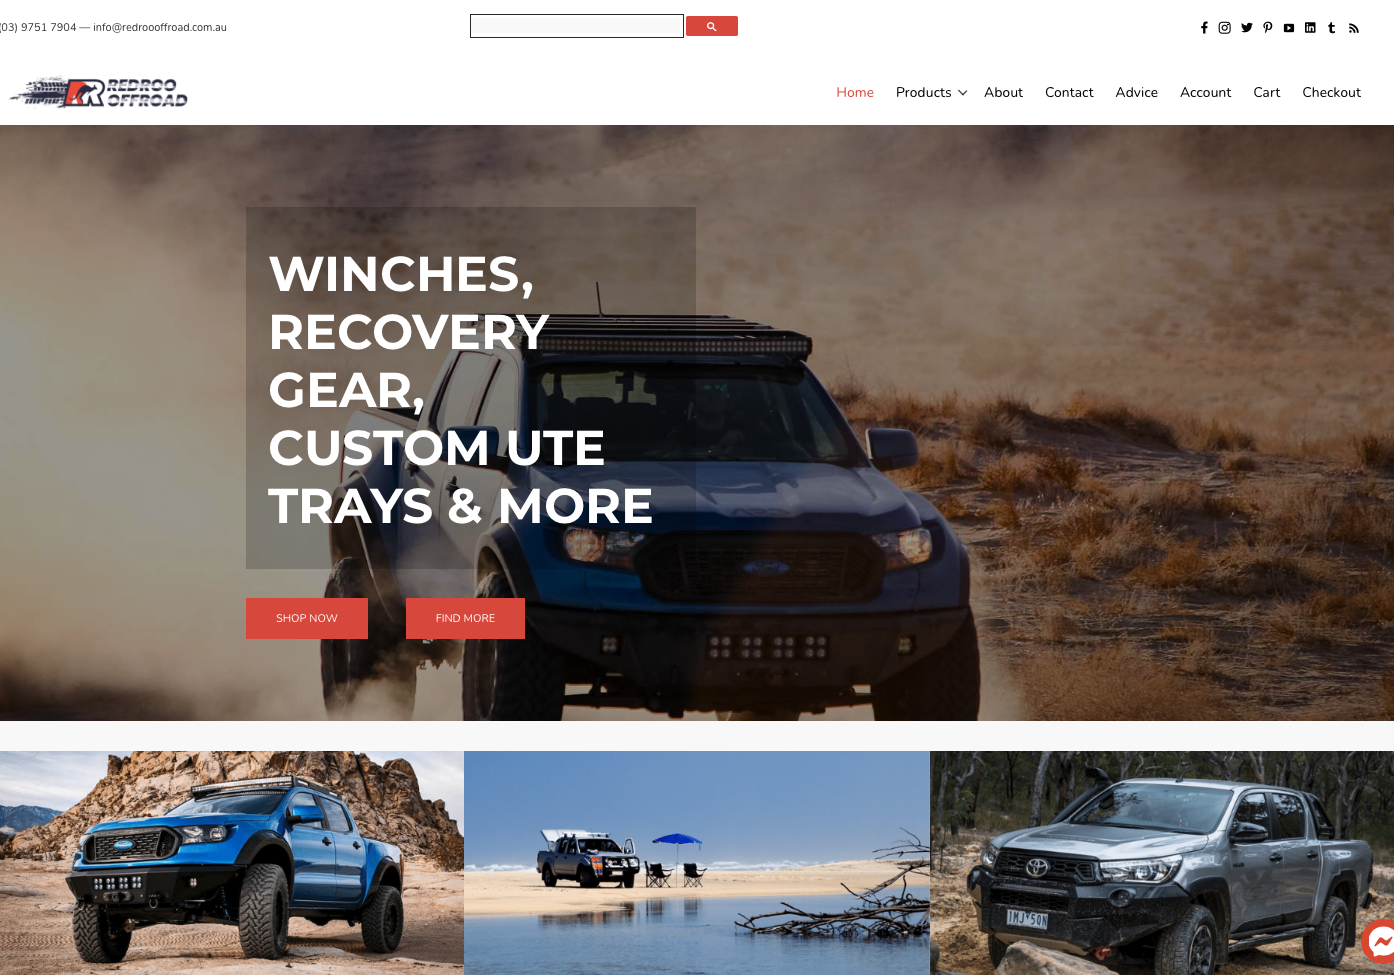 Redroo Offroad website built by Growthworx